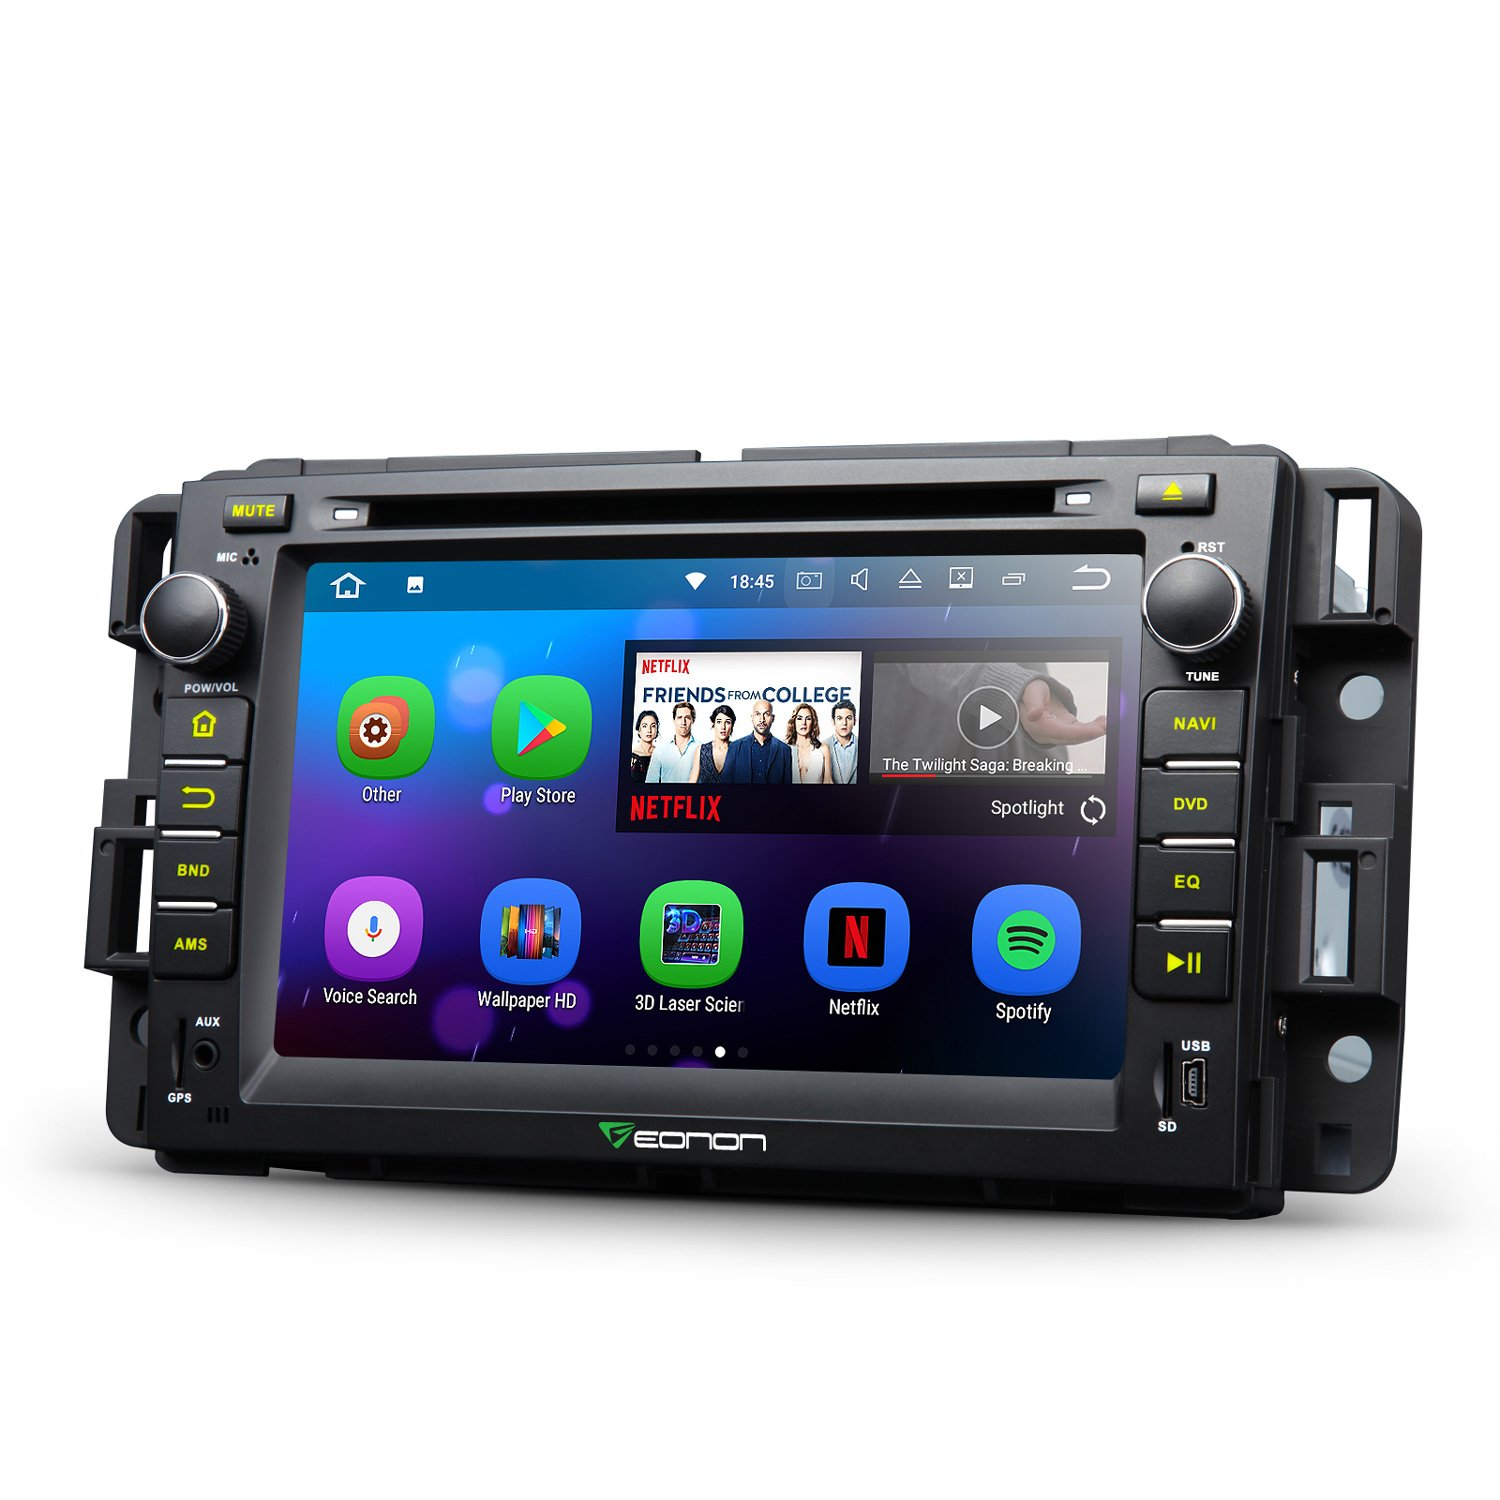 Eonon GA8180 Android 7.1 Nougat 7 Inch Car Stereo In Dash Touch Screen Radio Audio GPS Navigation for Chevrolet GMC Silverado Express Avalanche Acadia Impal 2GB RAM with DVD Player Bluetooth Head Unit